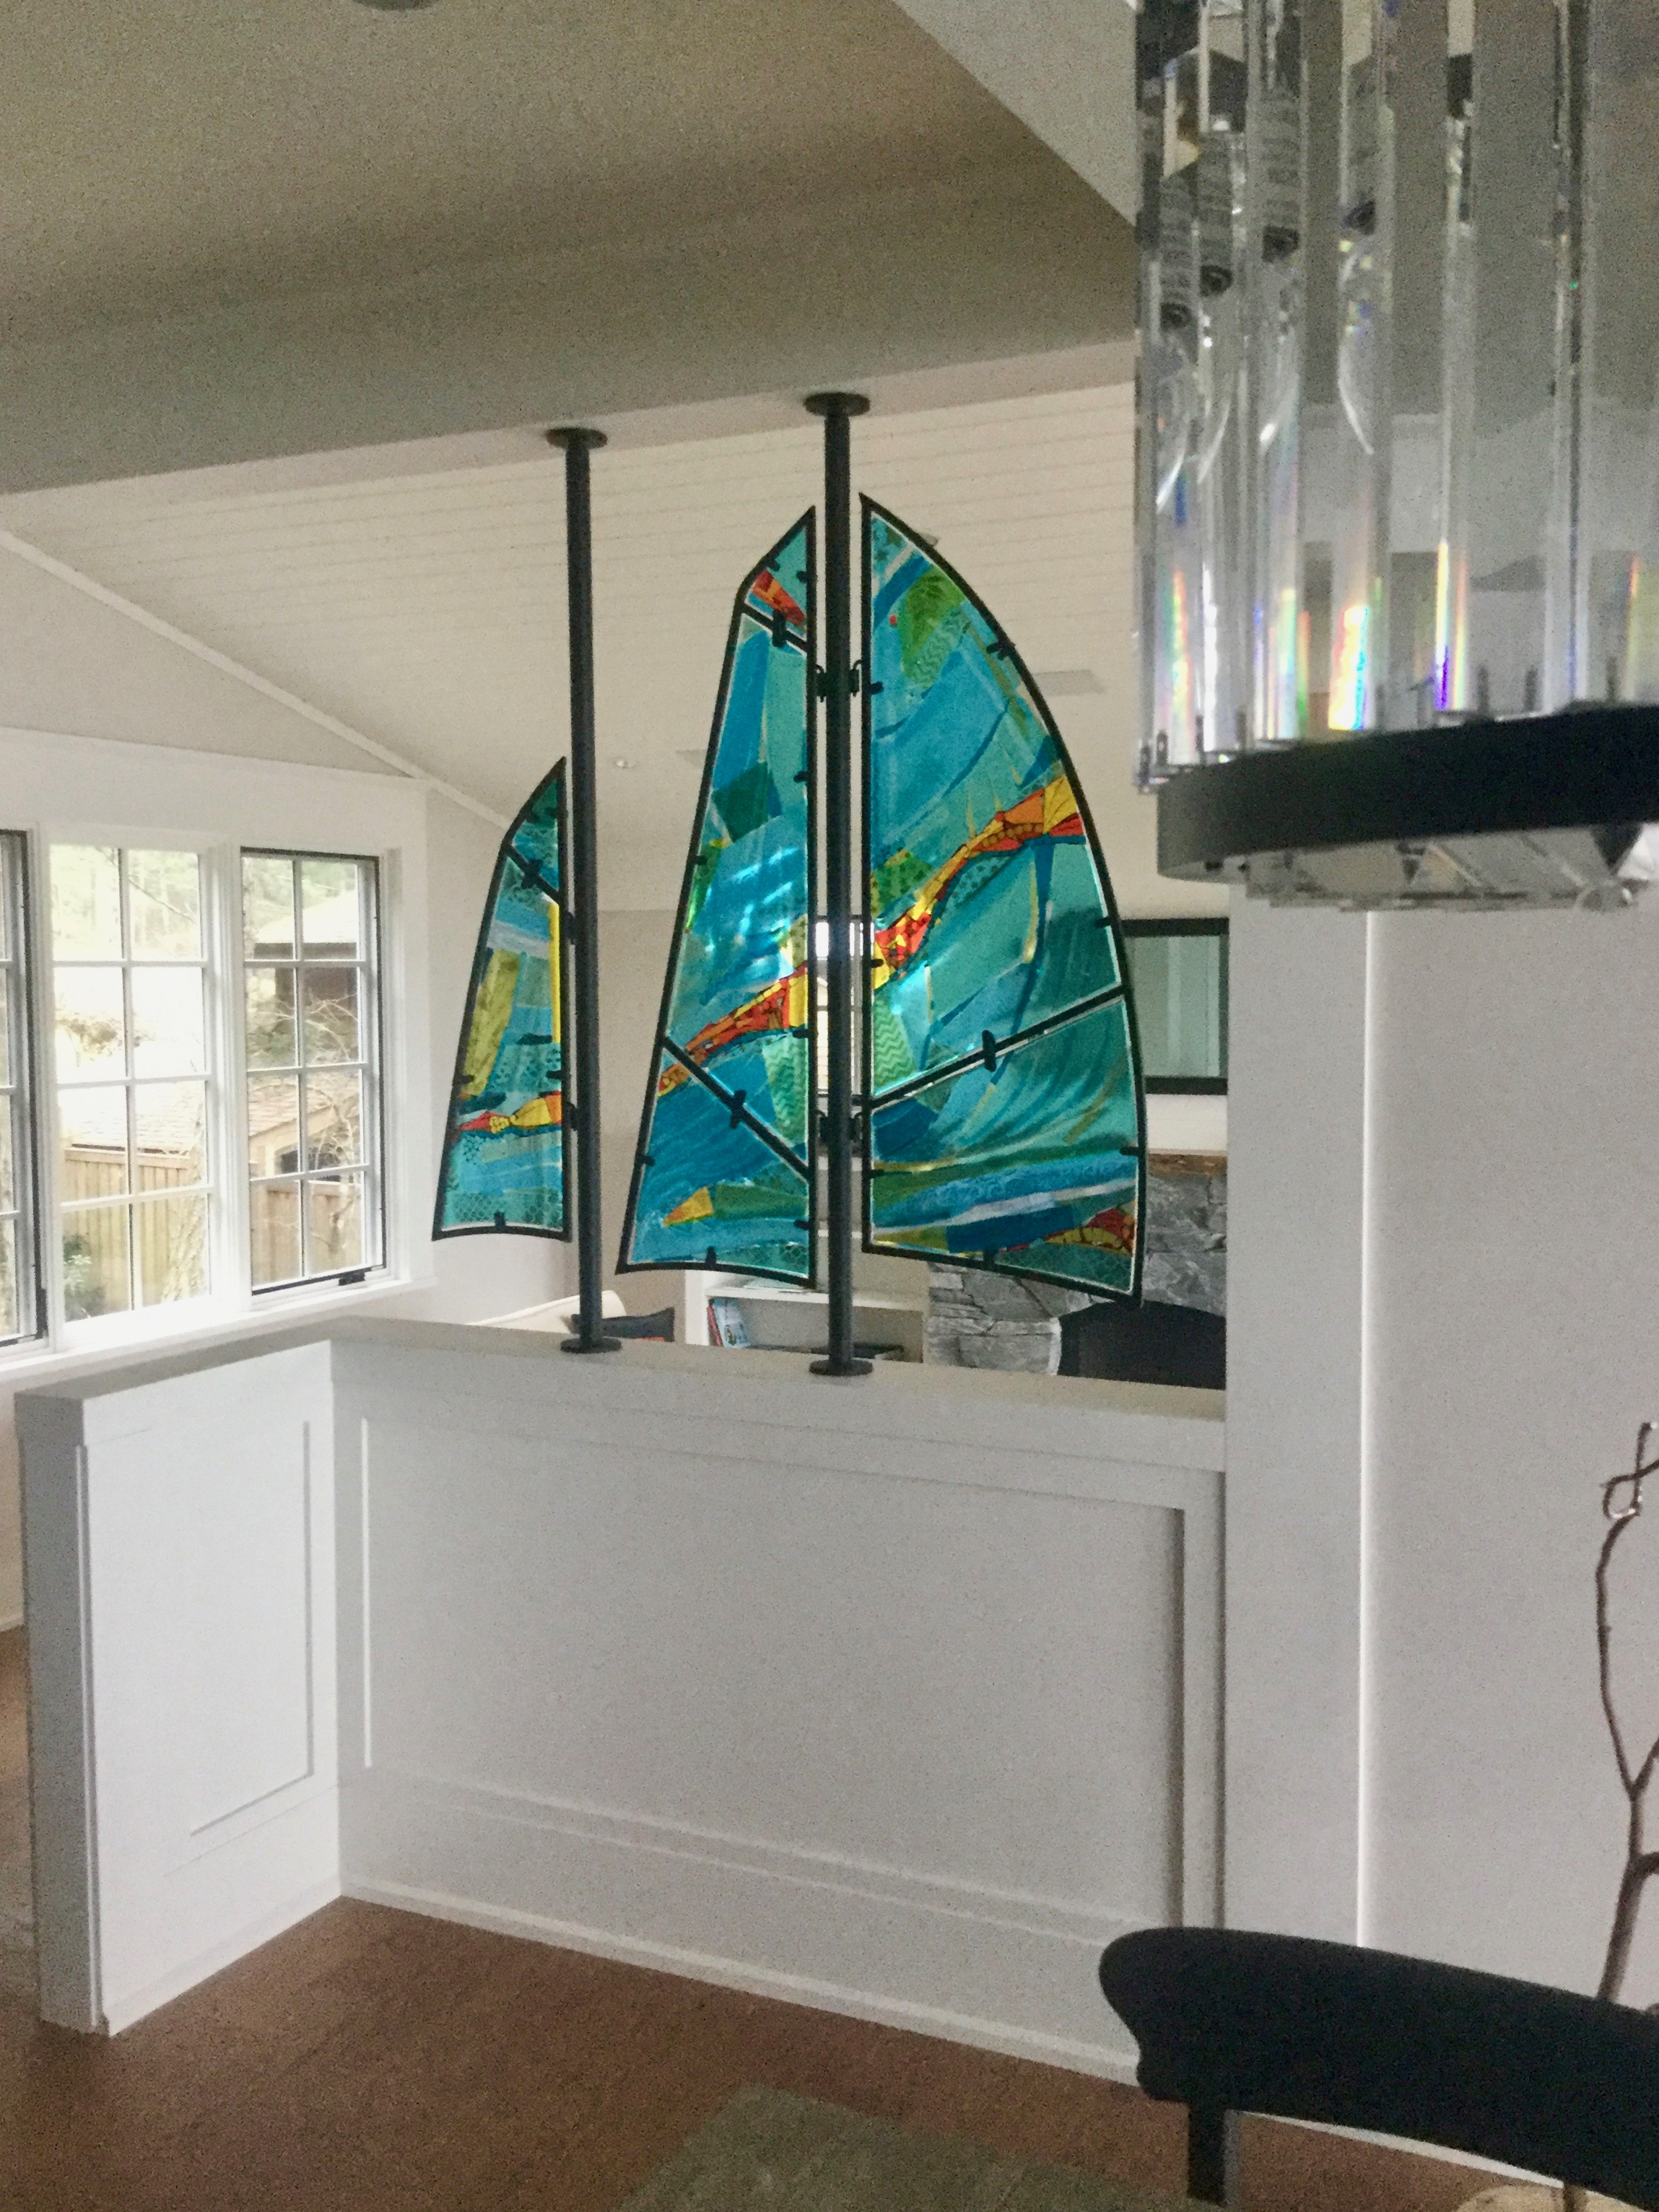 Finished fused glass sails